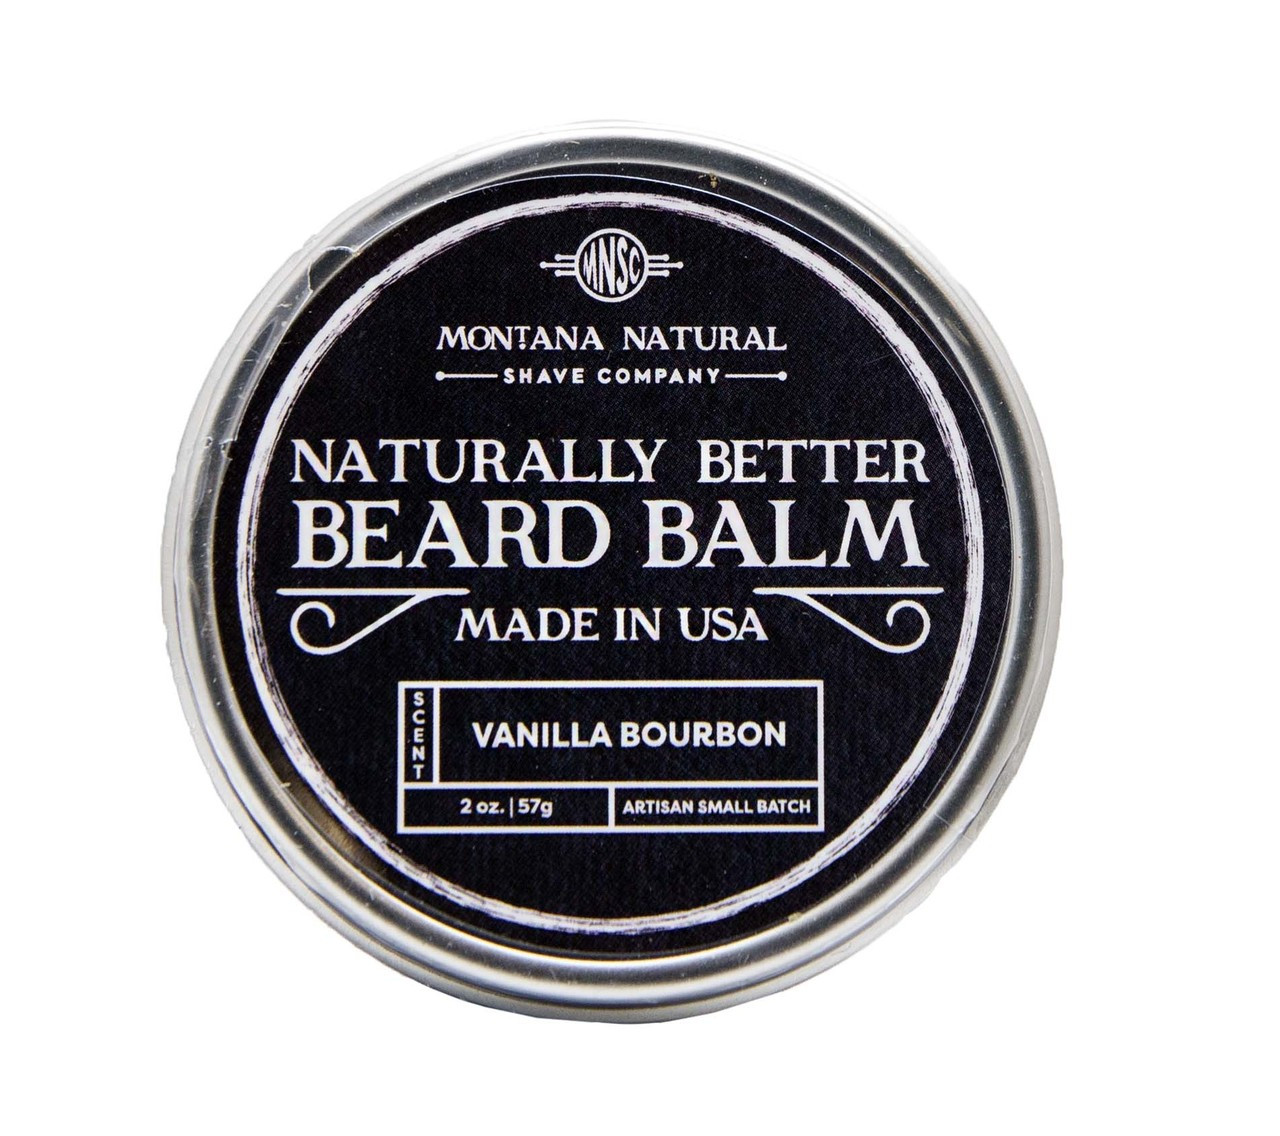 Small Batch Vanilla Bourbon Beard Balm Naturally Better - Montana Natural Shave Company